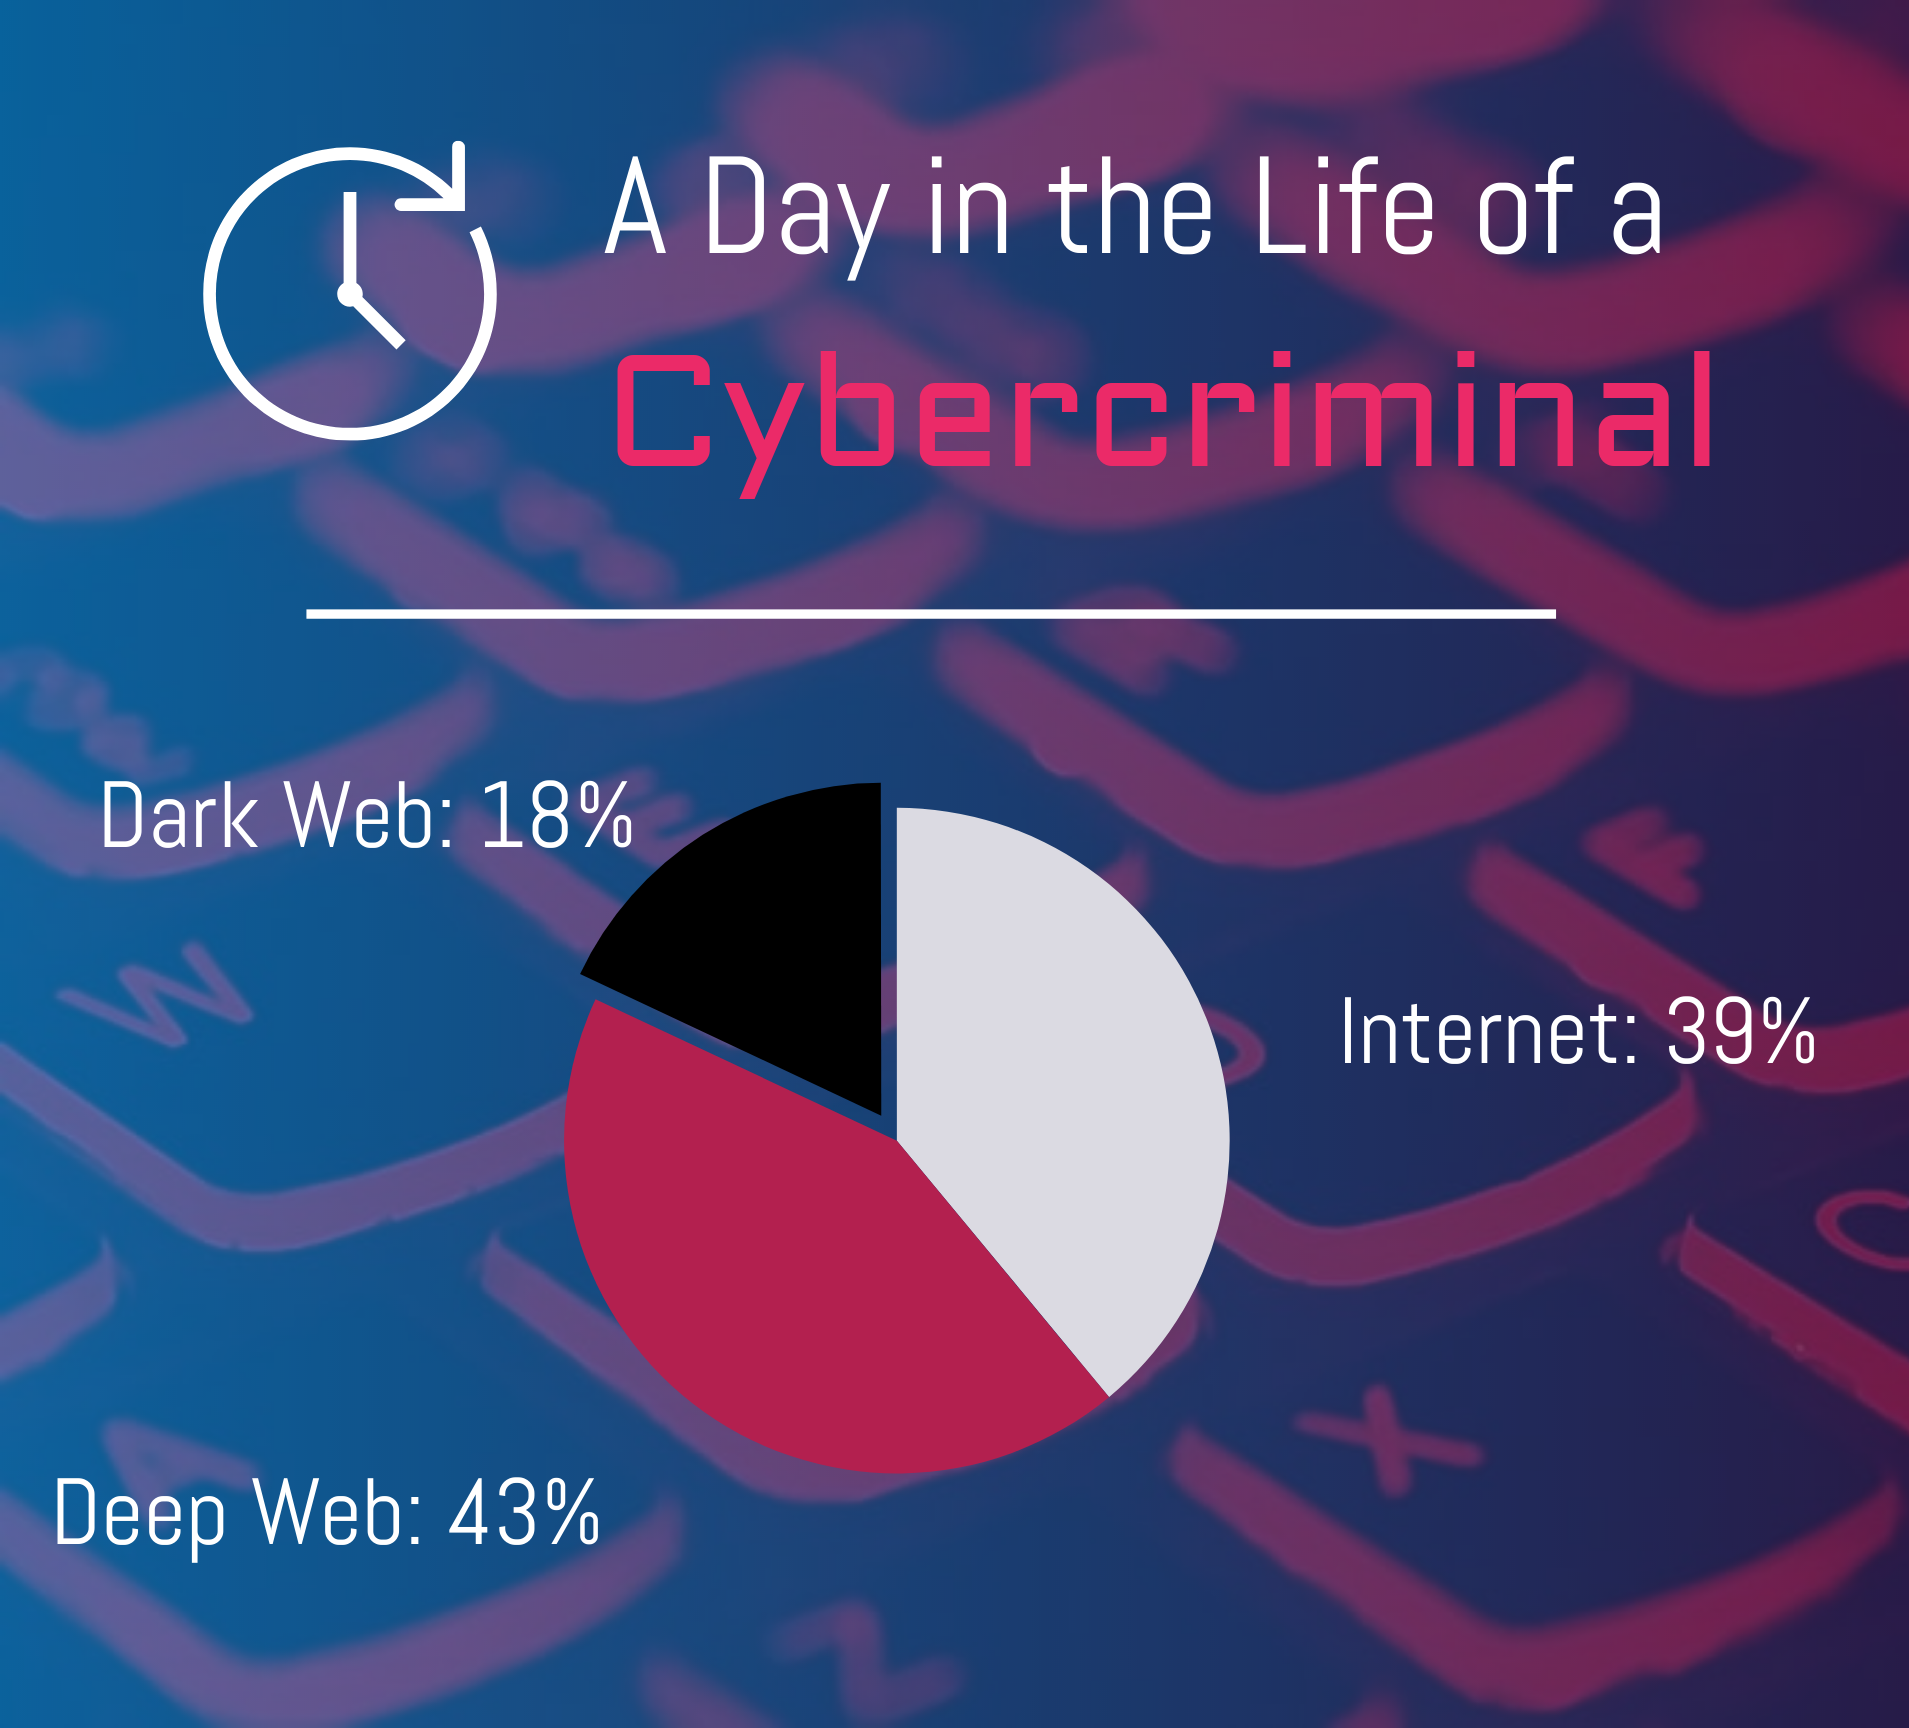 A Day in the Life of a Cybercriminal